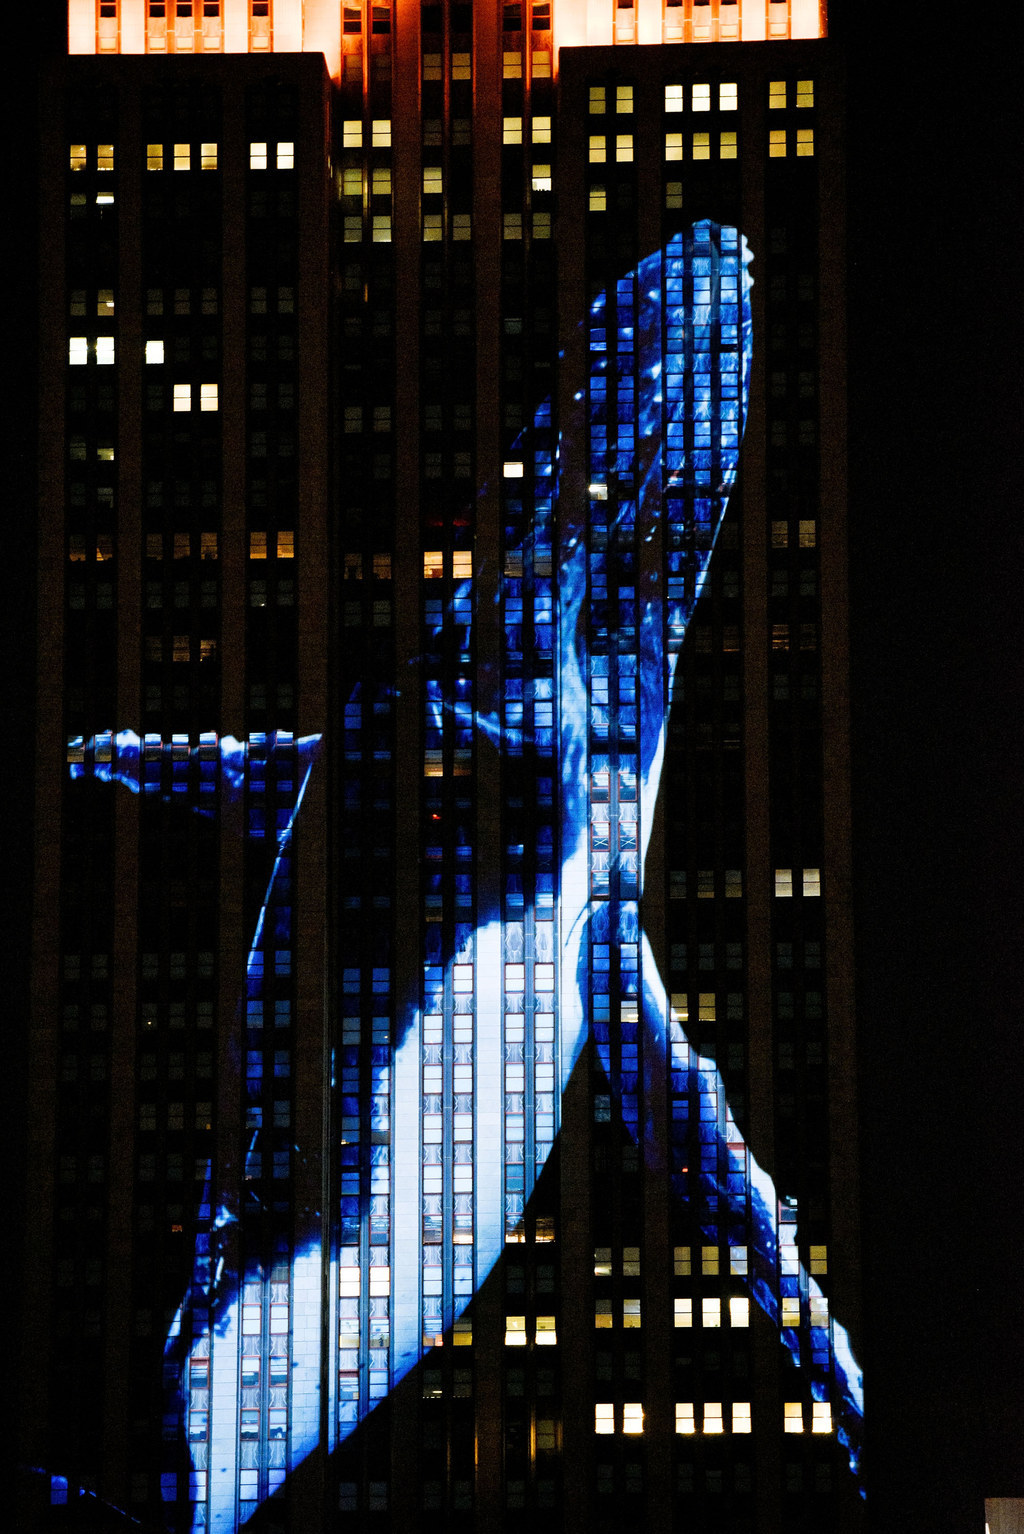 The Empire State Building Was Lit Up With Giant Photos Of Endangered Species